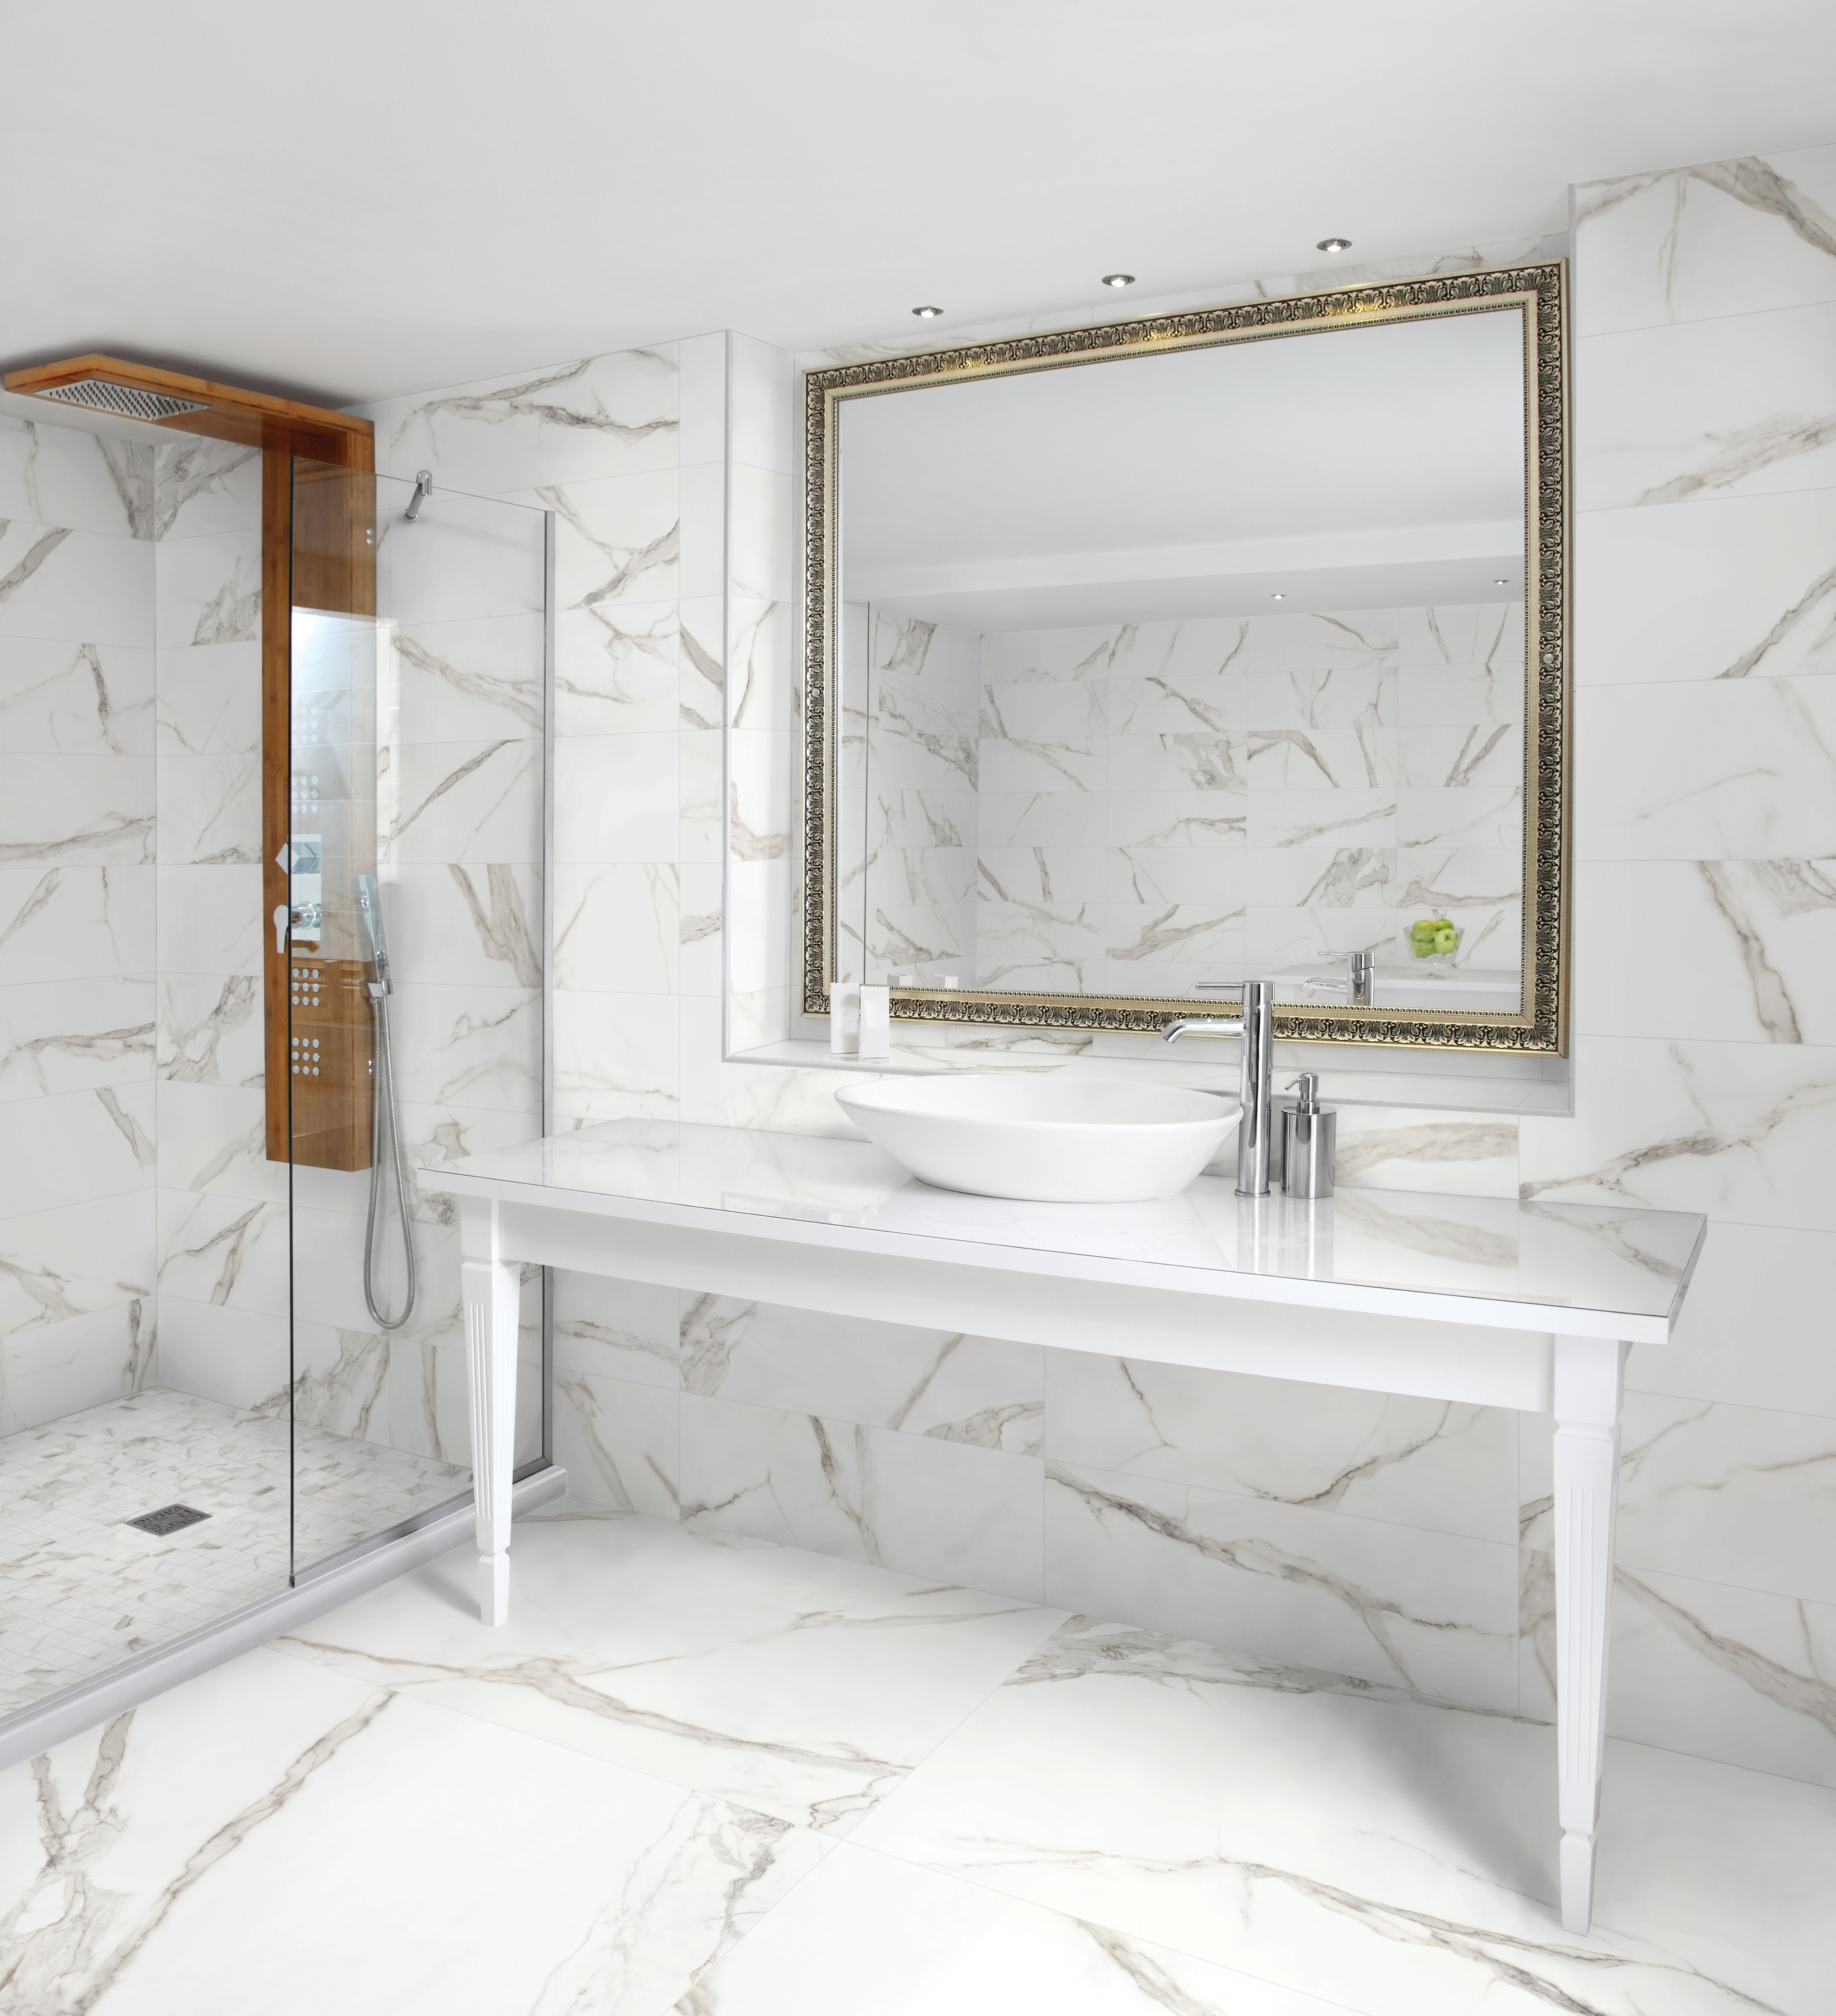 Mayfair Calacatta Available In Polished And Matte Rectified Porcelain Available I Porcelain Tile Bathroom Bathroom Remodel Pictures Gray And White Bathroom